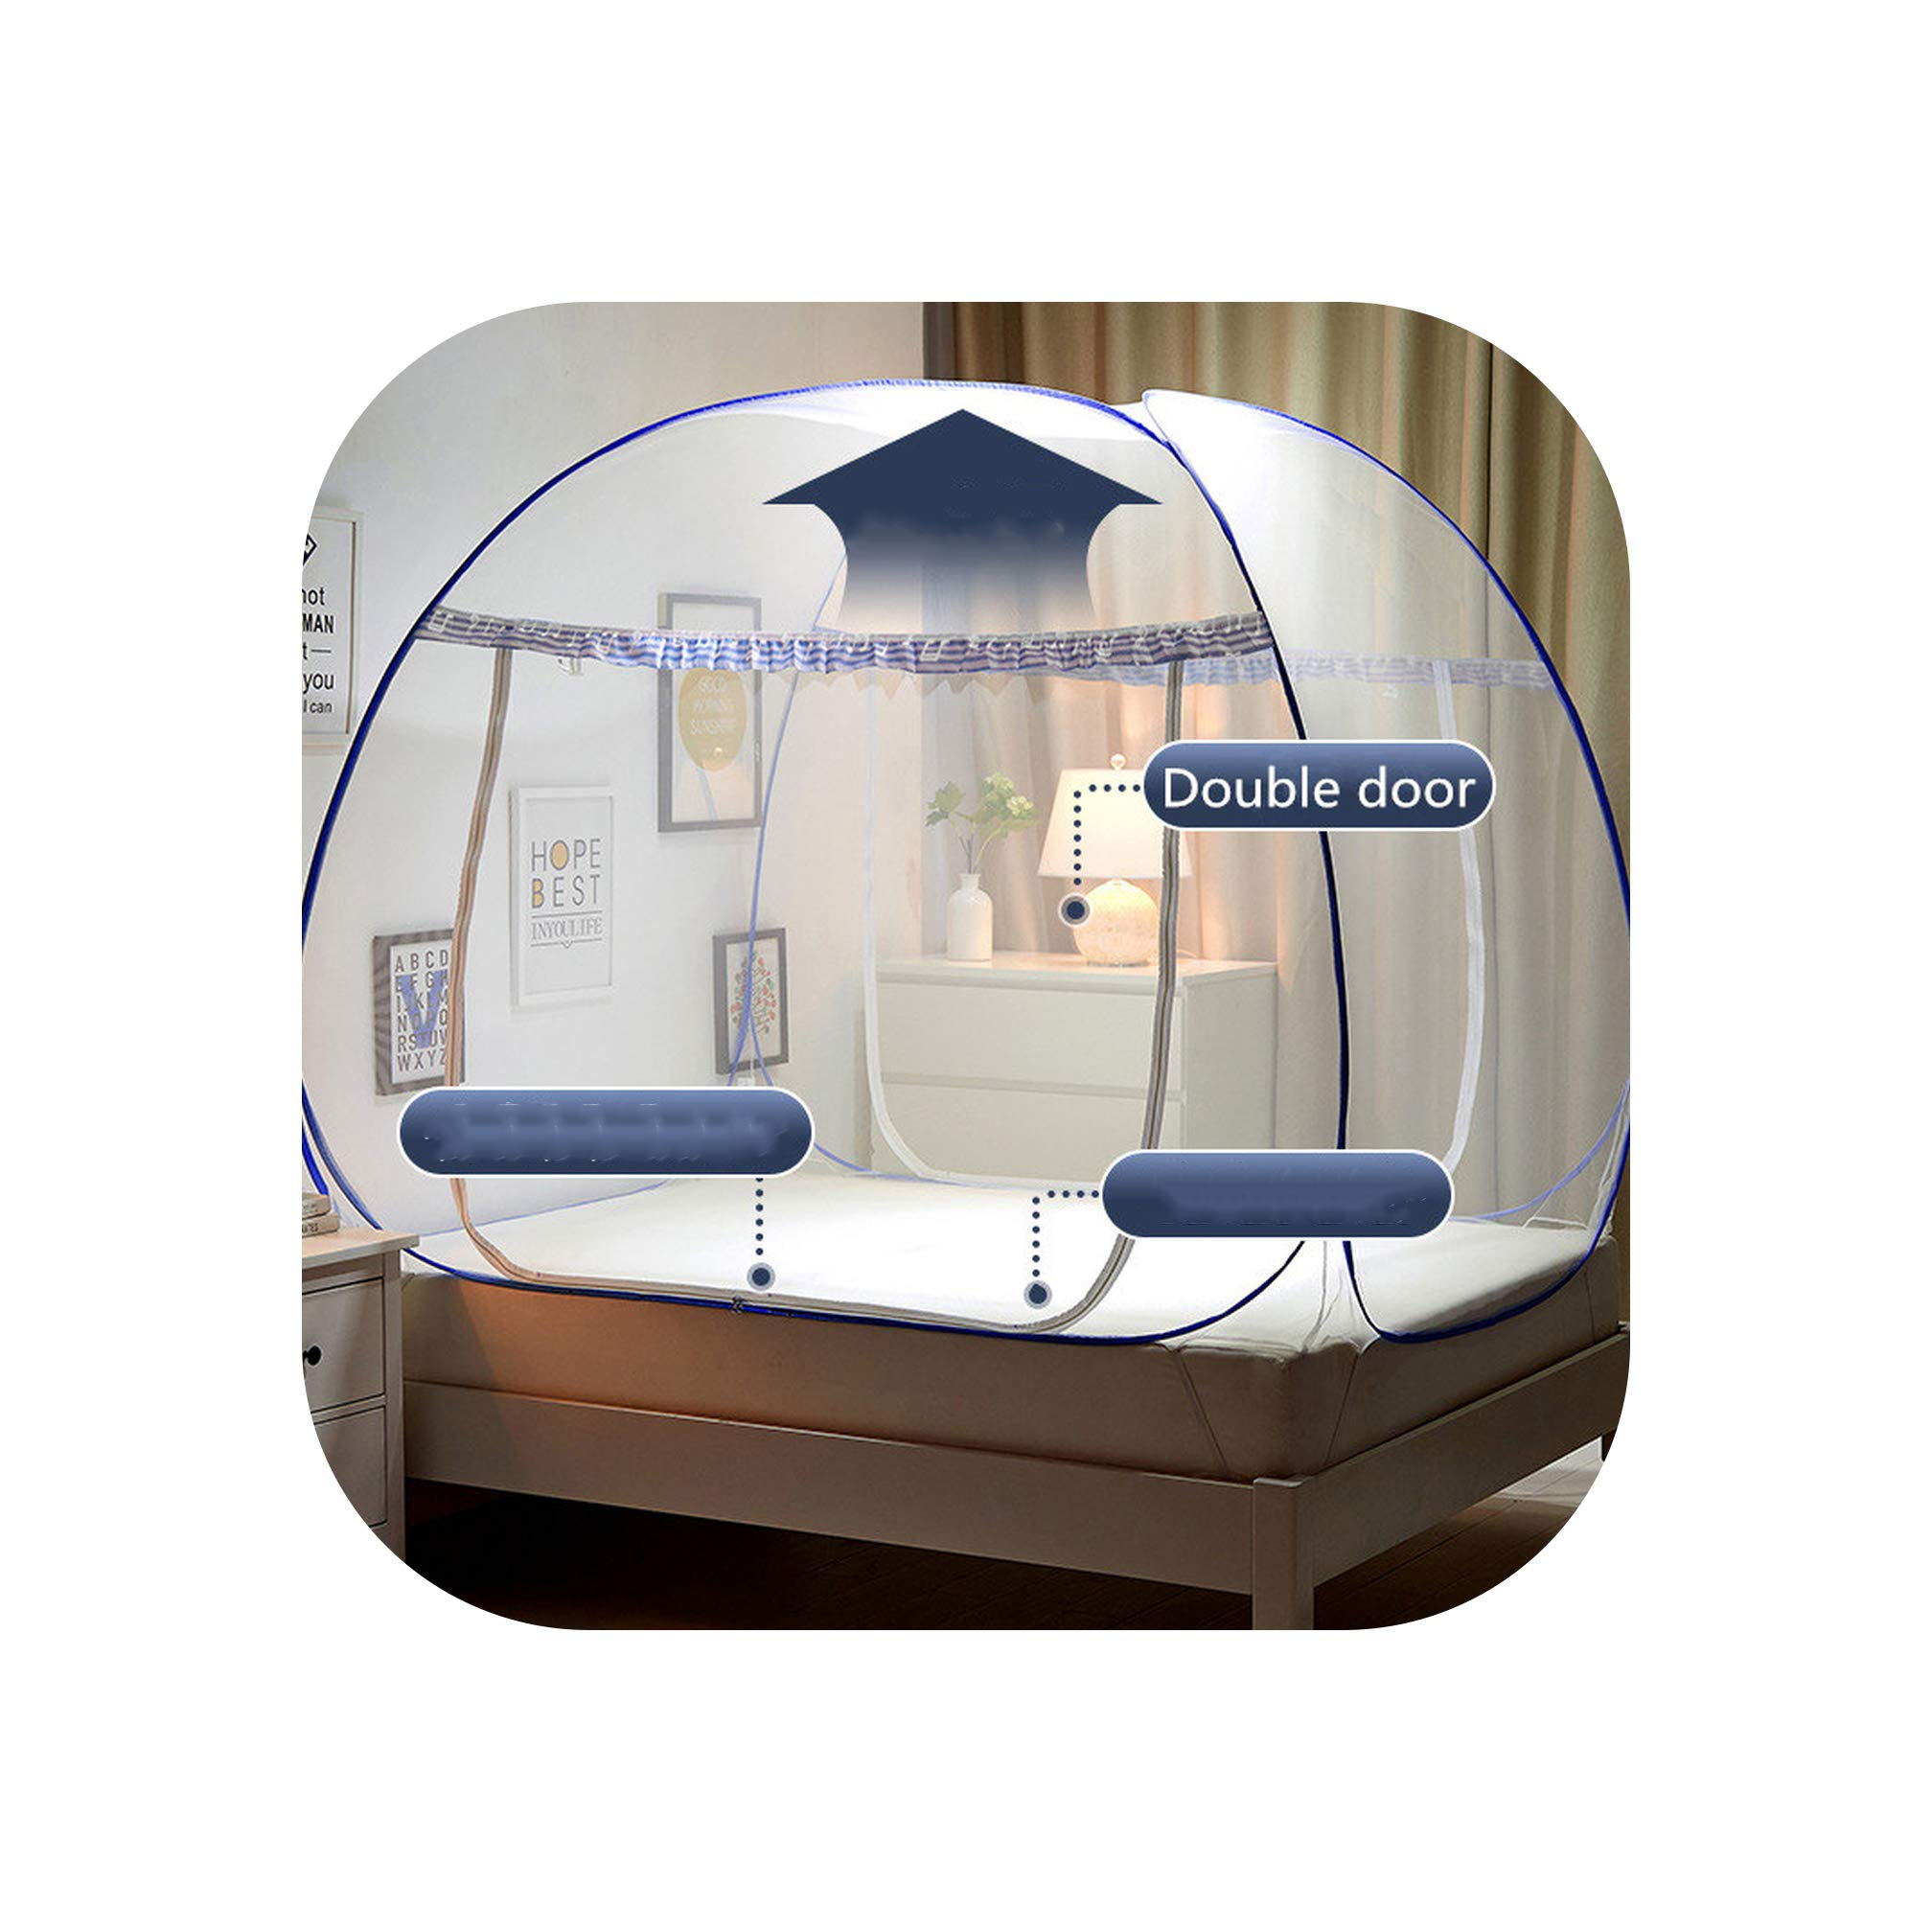 Folding Mosquito Net for Student Adults Double Bed Mosquito Netting Mesh Modern Style Anti Falling Bed Nets,Blue Notes. 2 Door,1.2m (4 feet) Bed